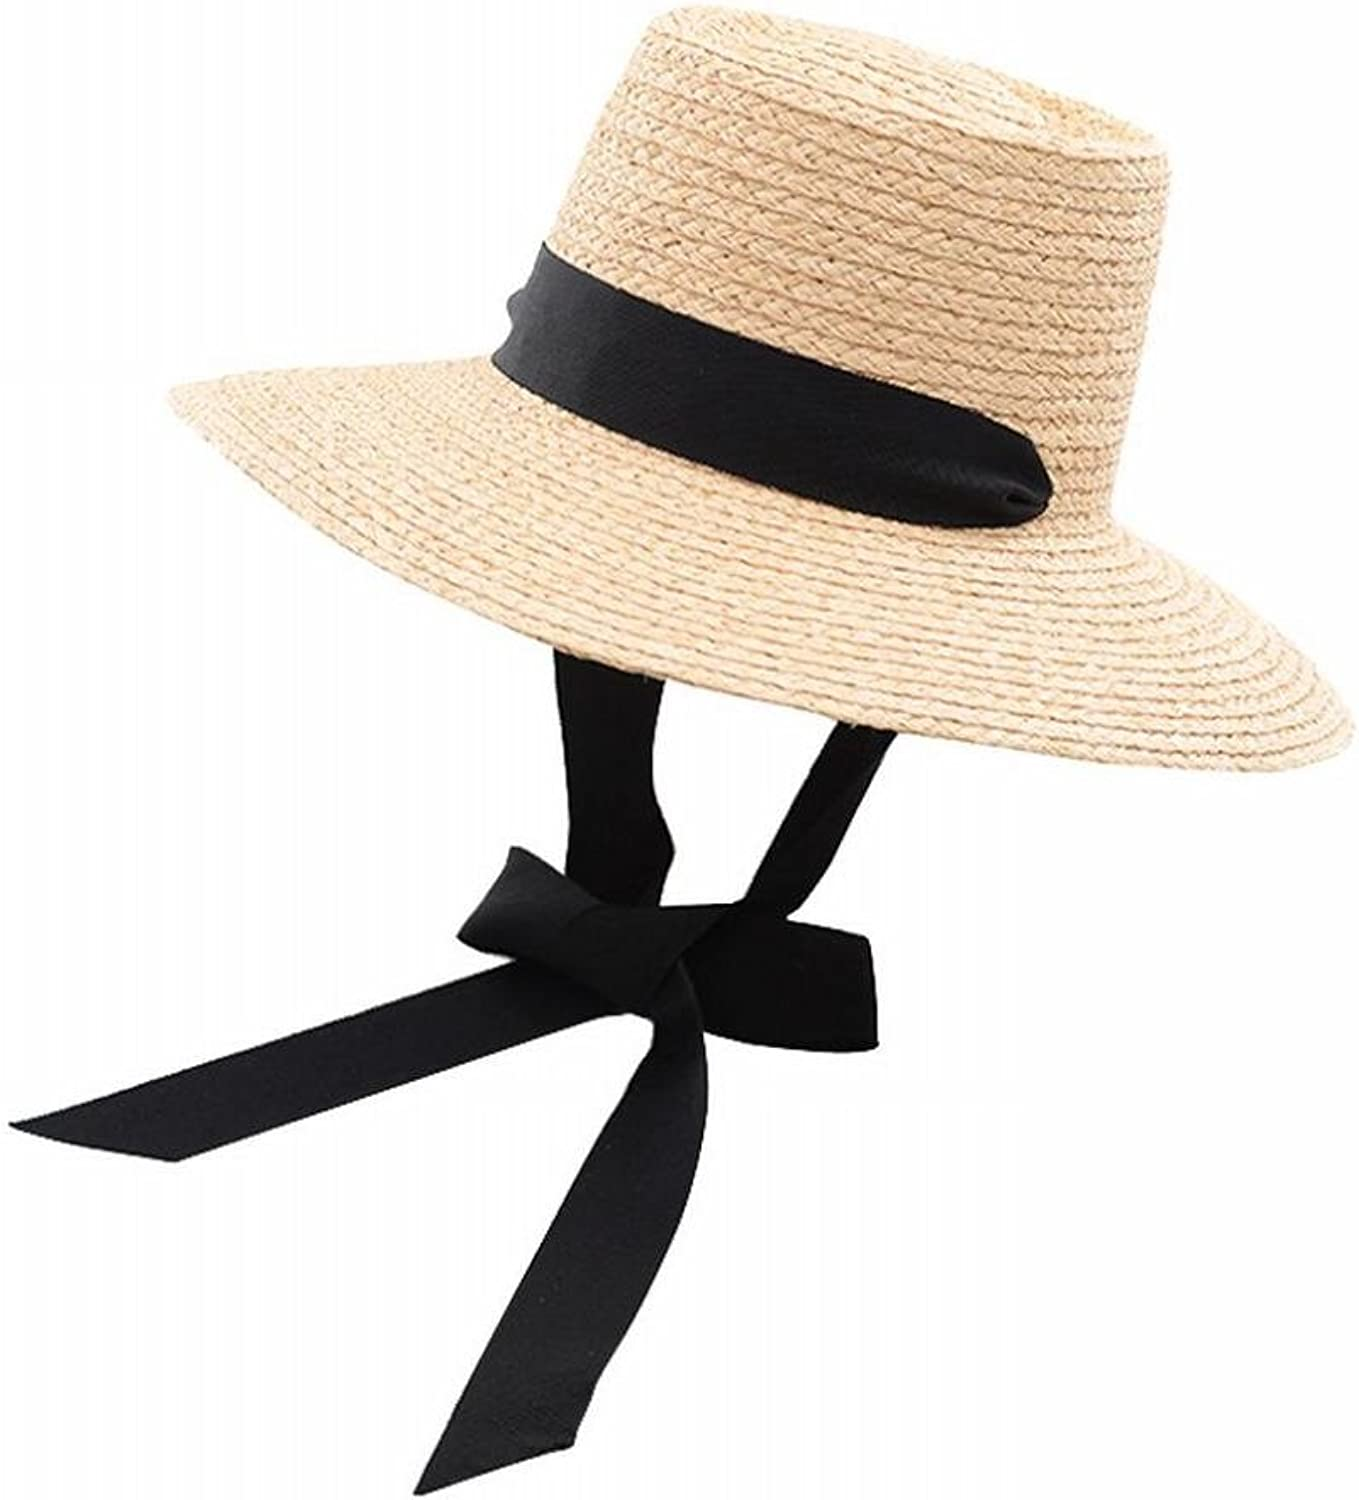 Europe and America Wind Ribbon Bow Tether Hat Ms. Outdoor Tourism Beach Straw hat,A,M SLR